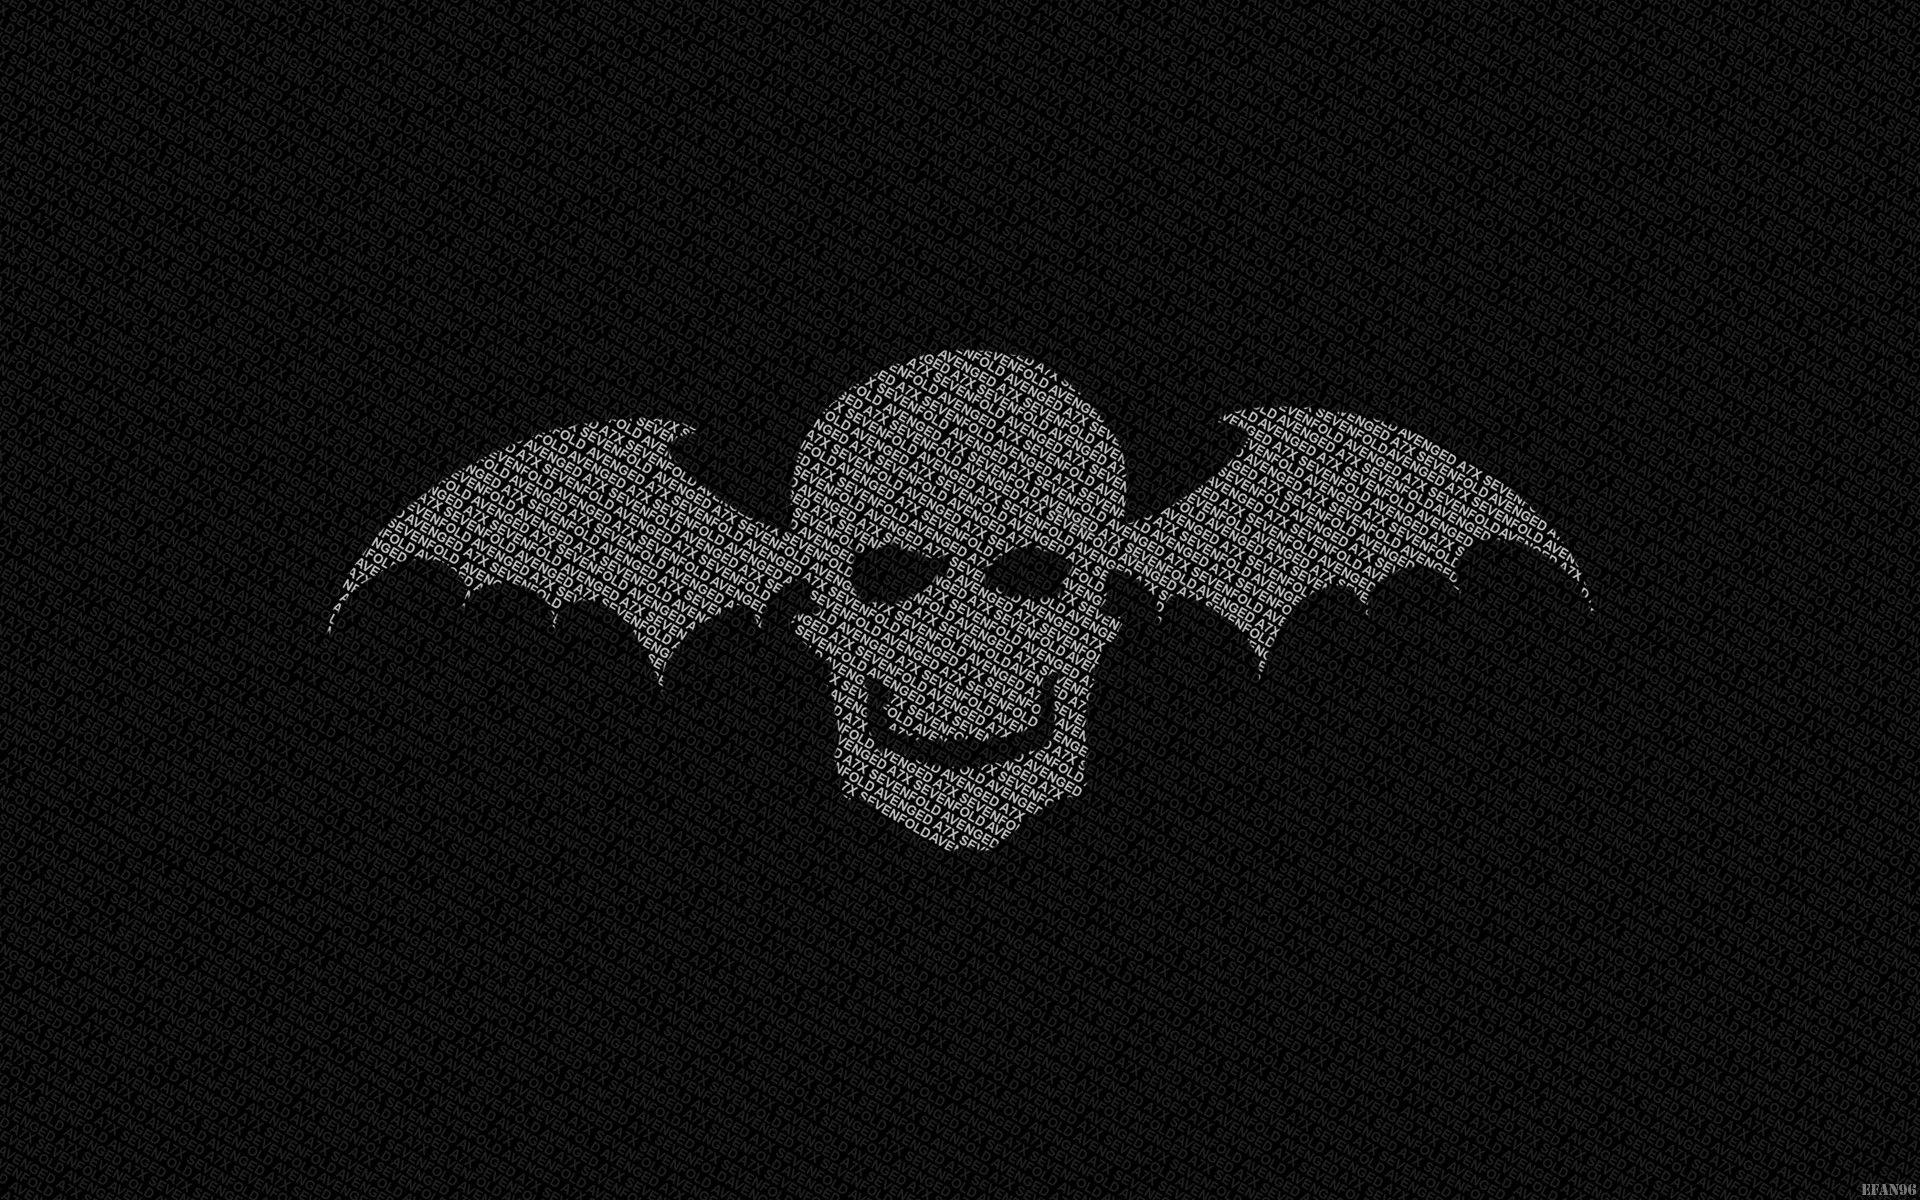 Avenged Sevenfold wallpapers ·① Download free cool HD backgrounds